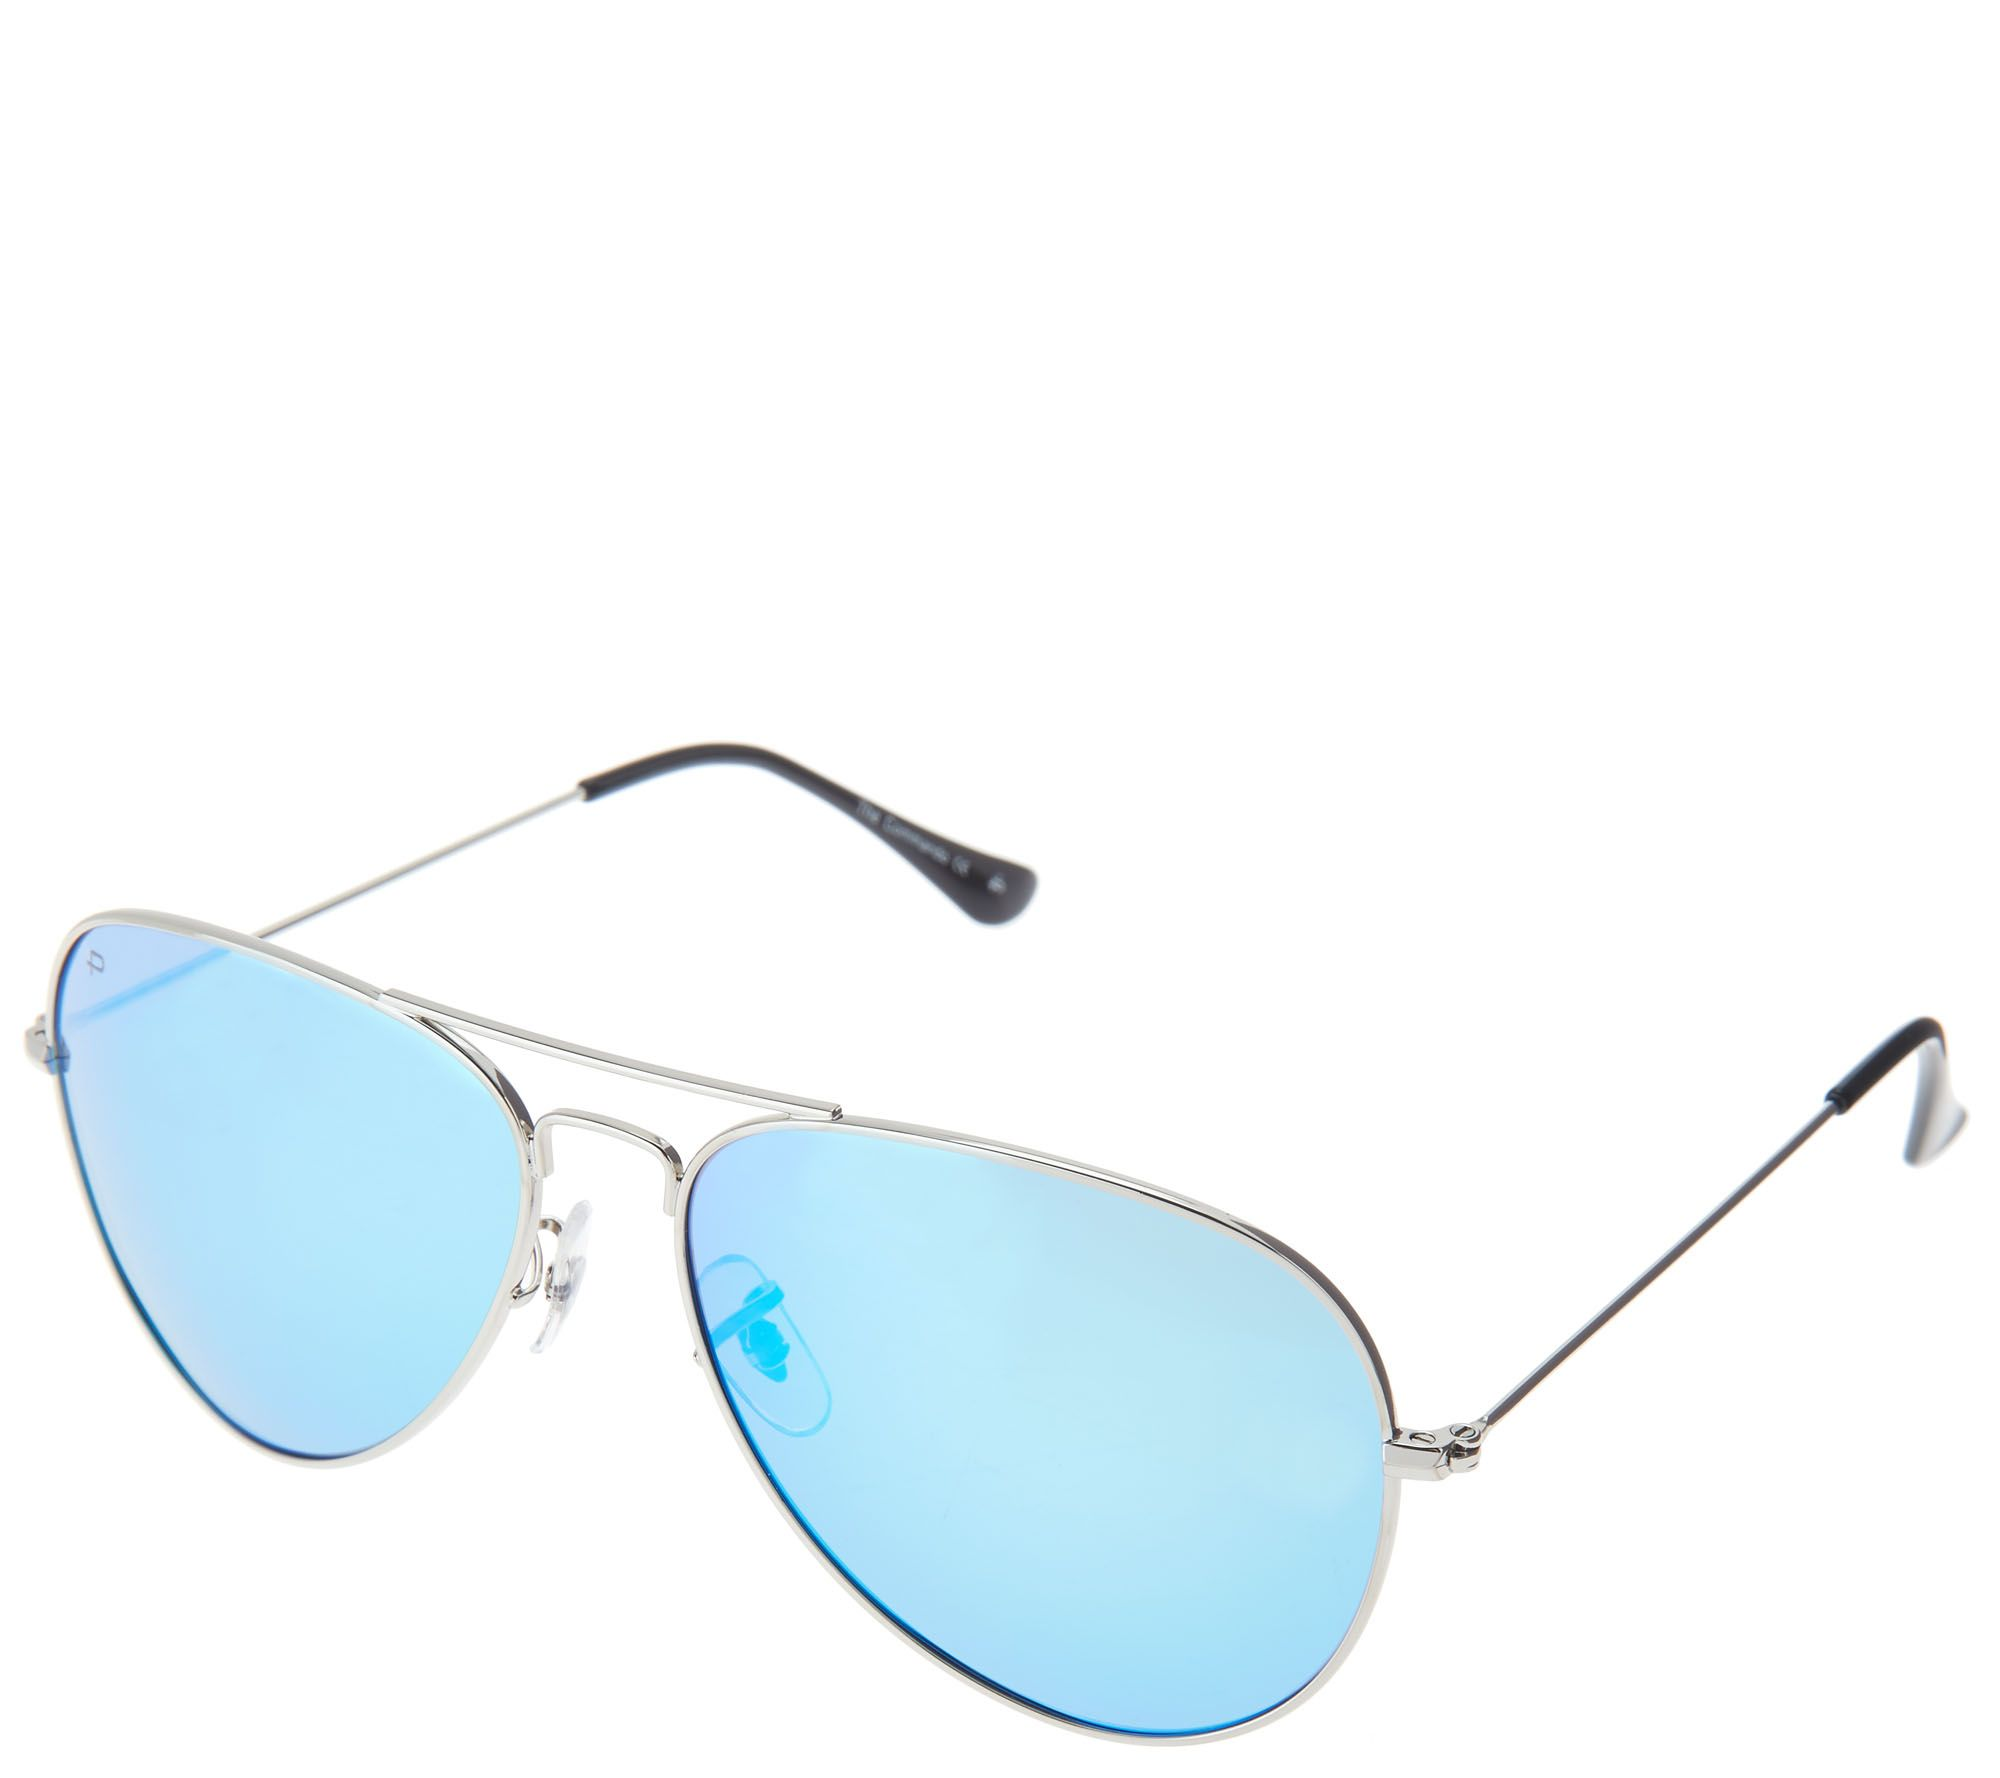 bd71564e586 Prive Revaux Commando Aviator Polarized Sunglasses - Page 1 — QVC.com